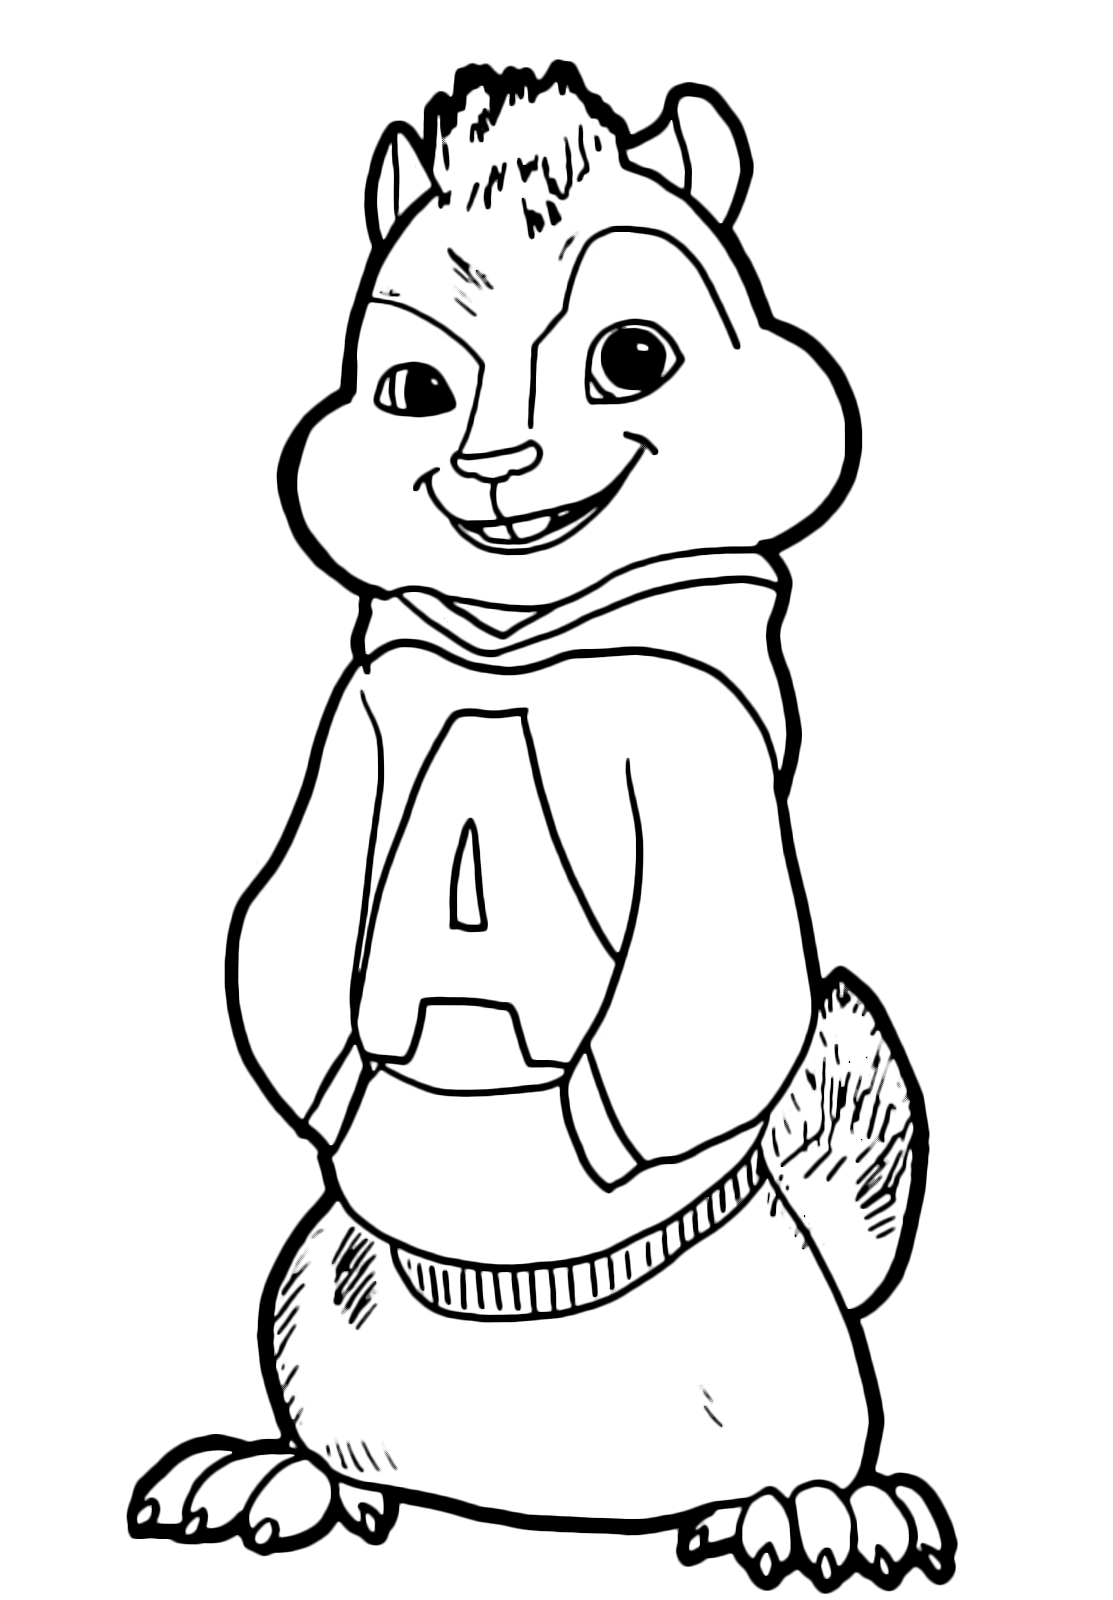 Alvin And The Chipmunks Alvin Superstar